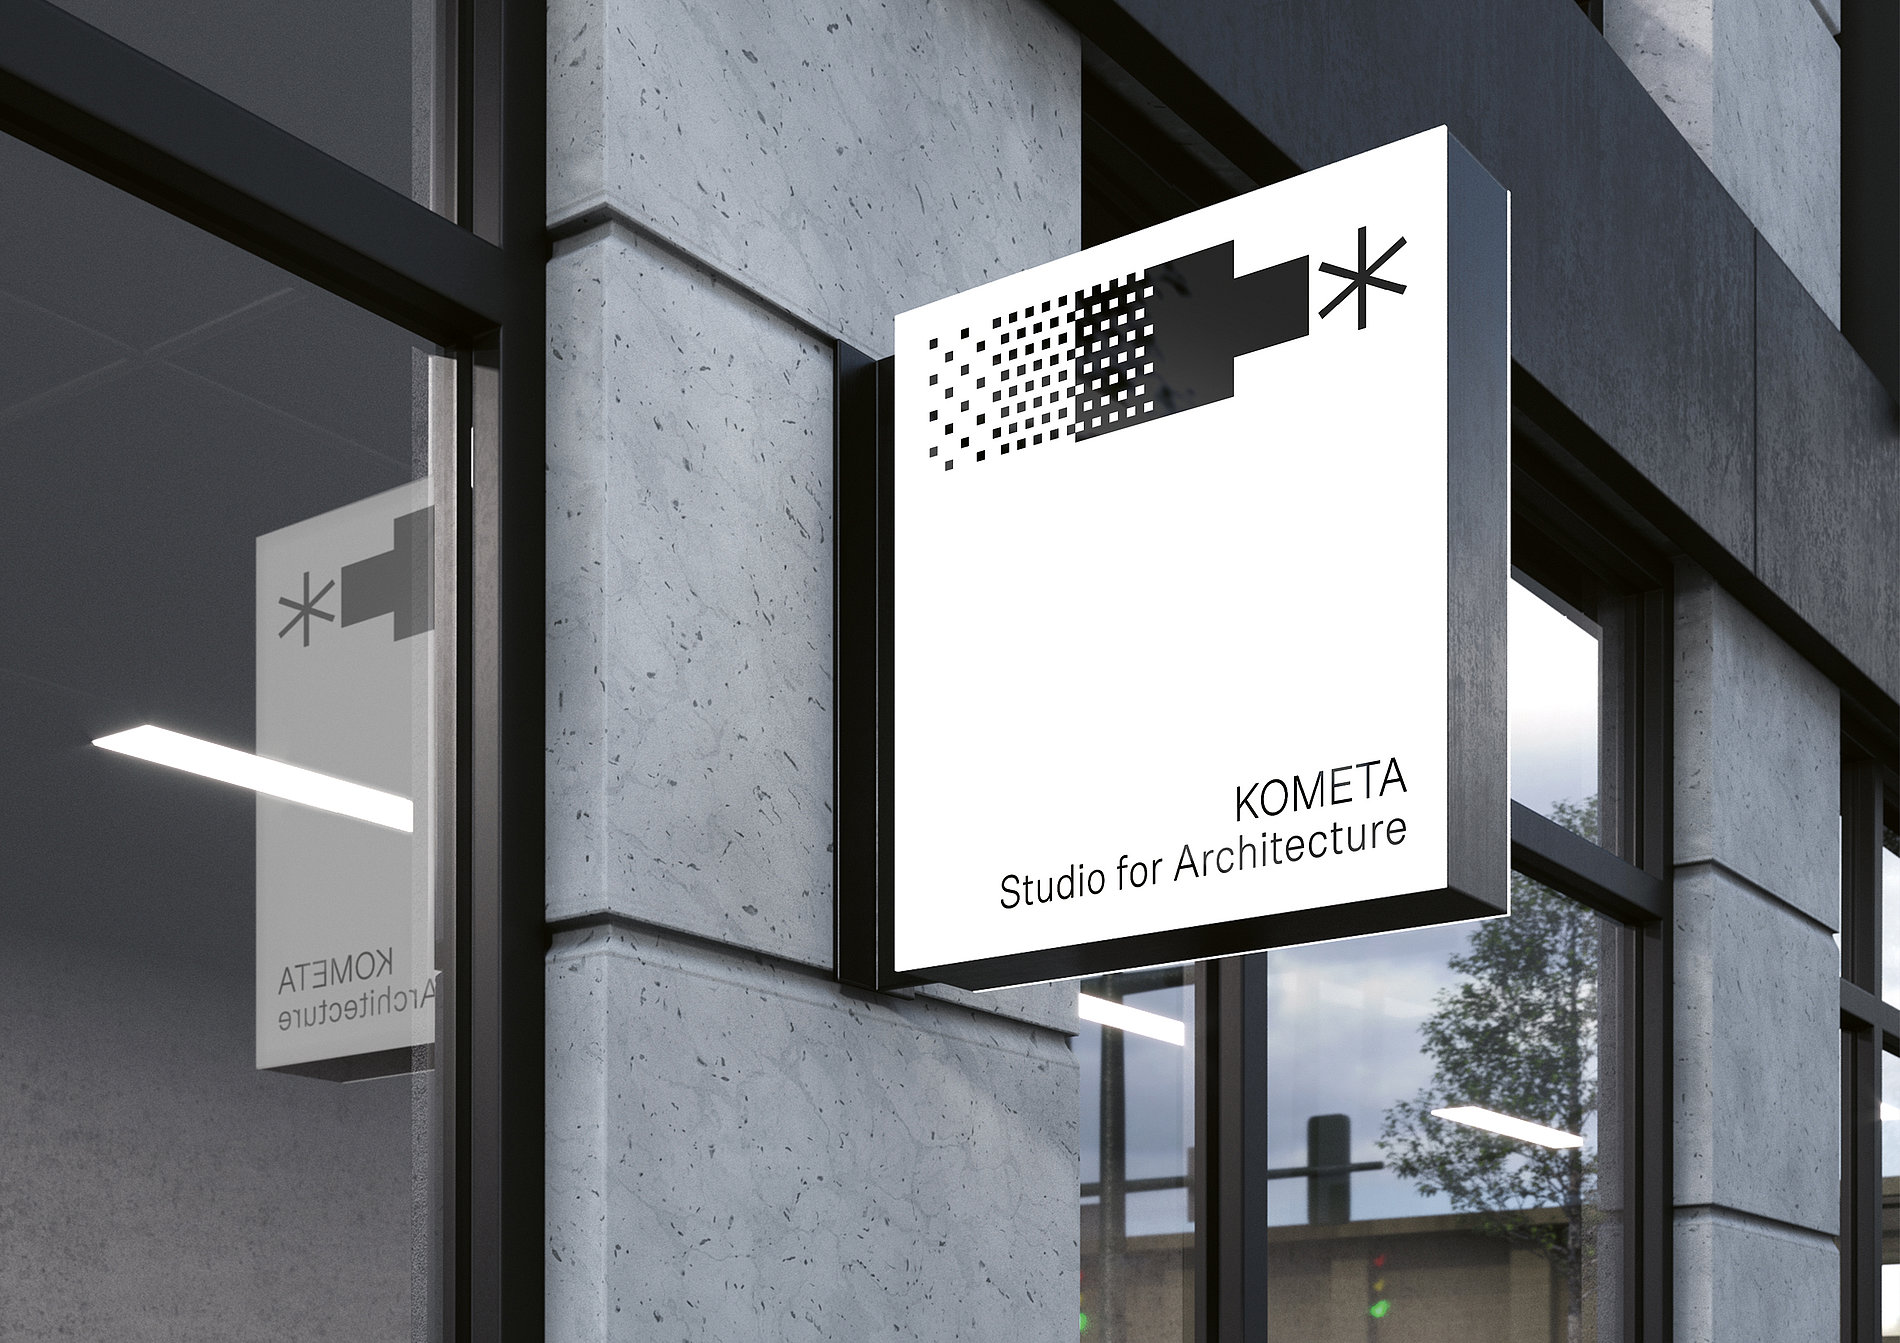 KOMETA Architecture Studio: The Text-Only Identity | Red Dot Design Award